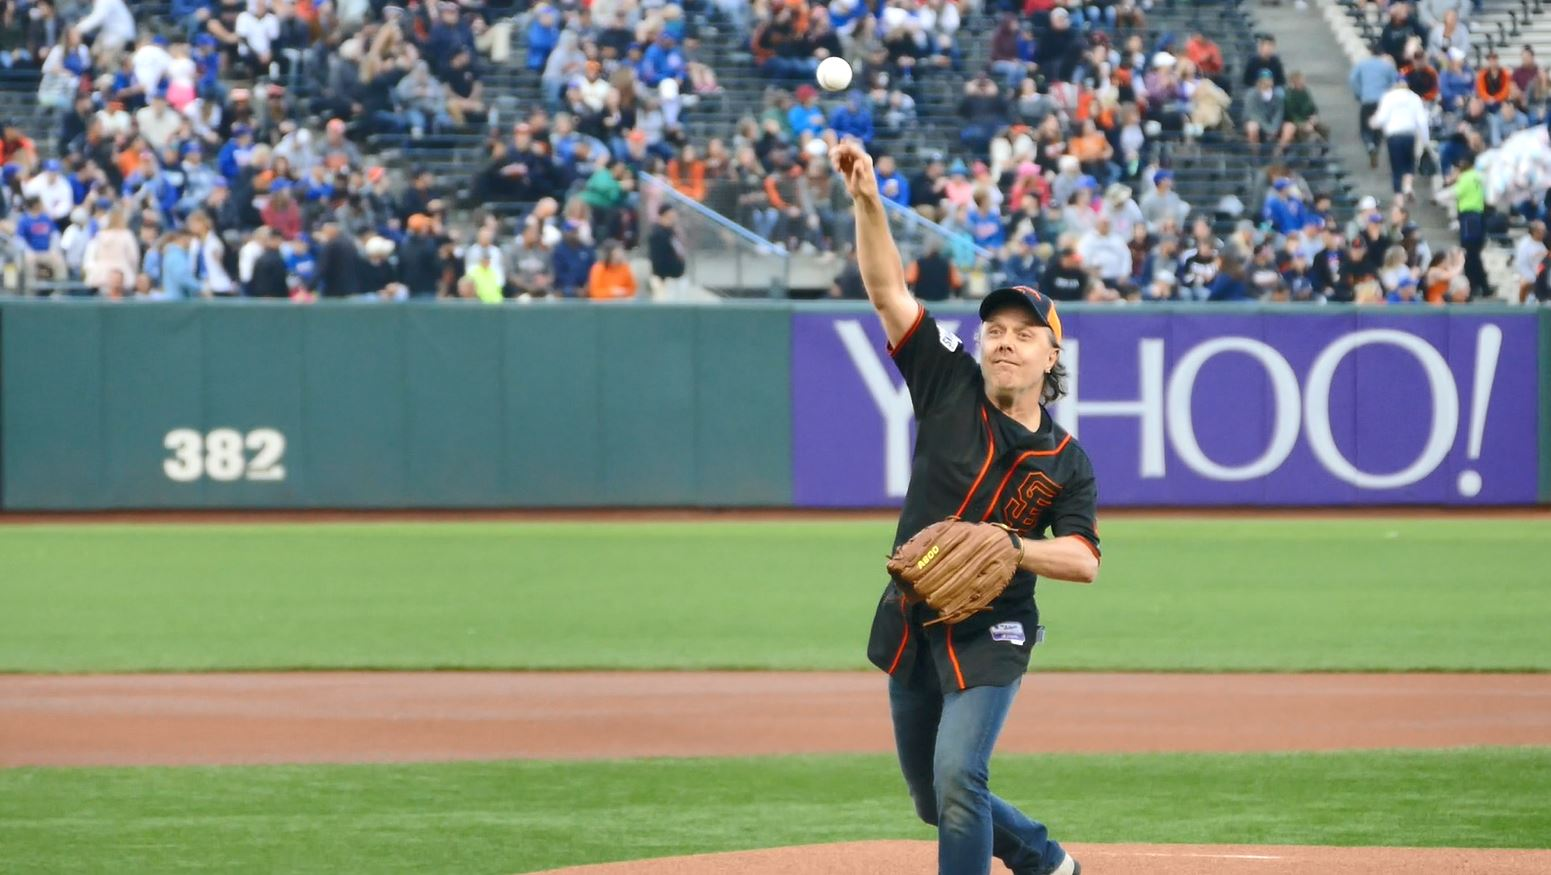 Lars Ulrich Metallica SF Giants First Pitch 2017